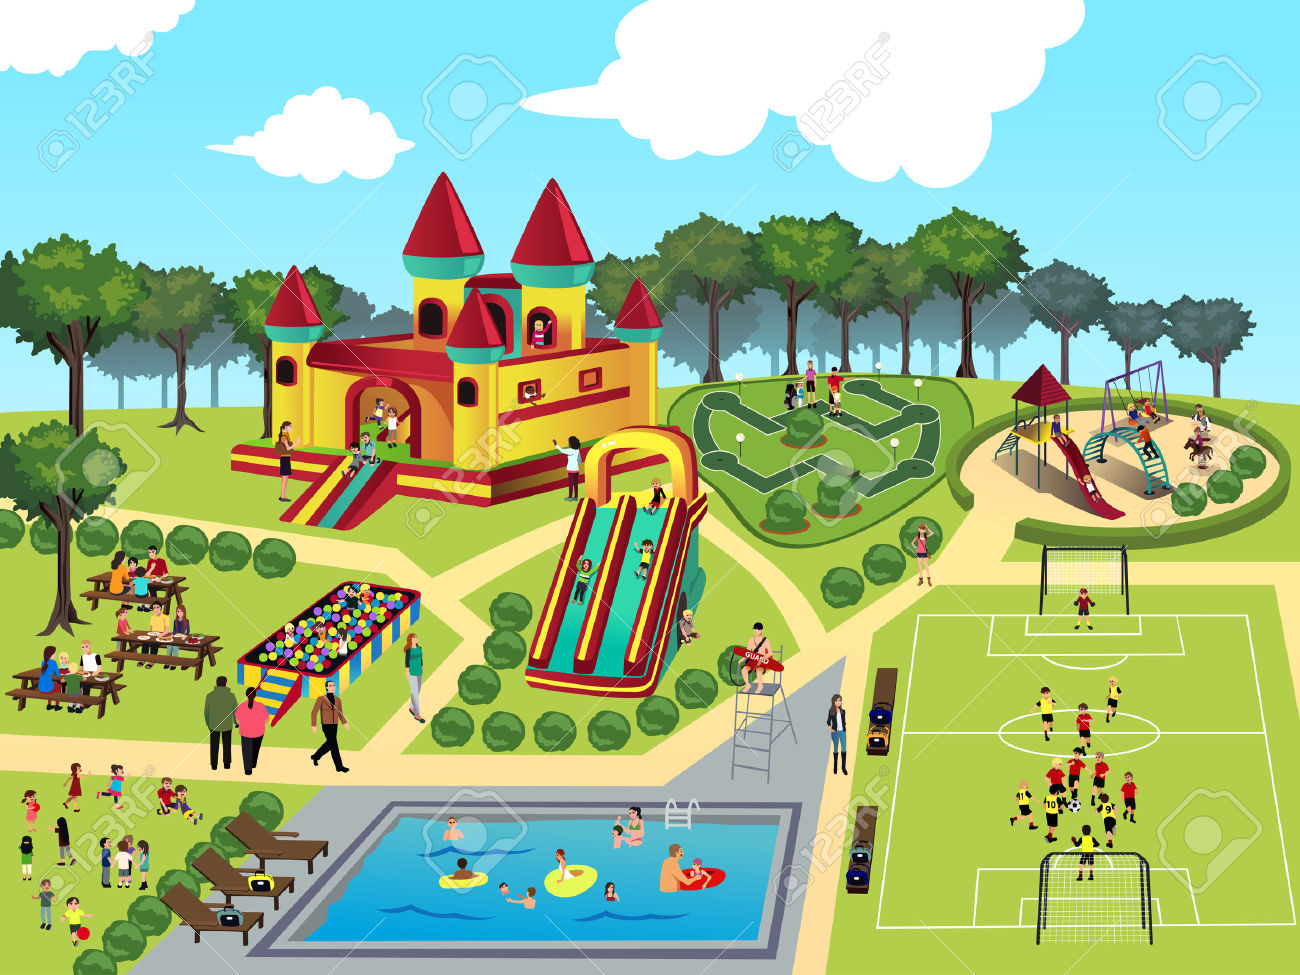 Free Park Cliparts, Download Free Clip Art, Free Clip Art on.